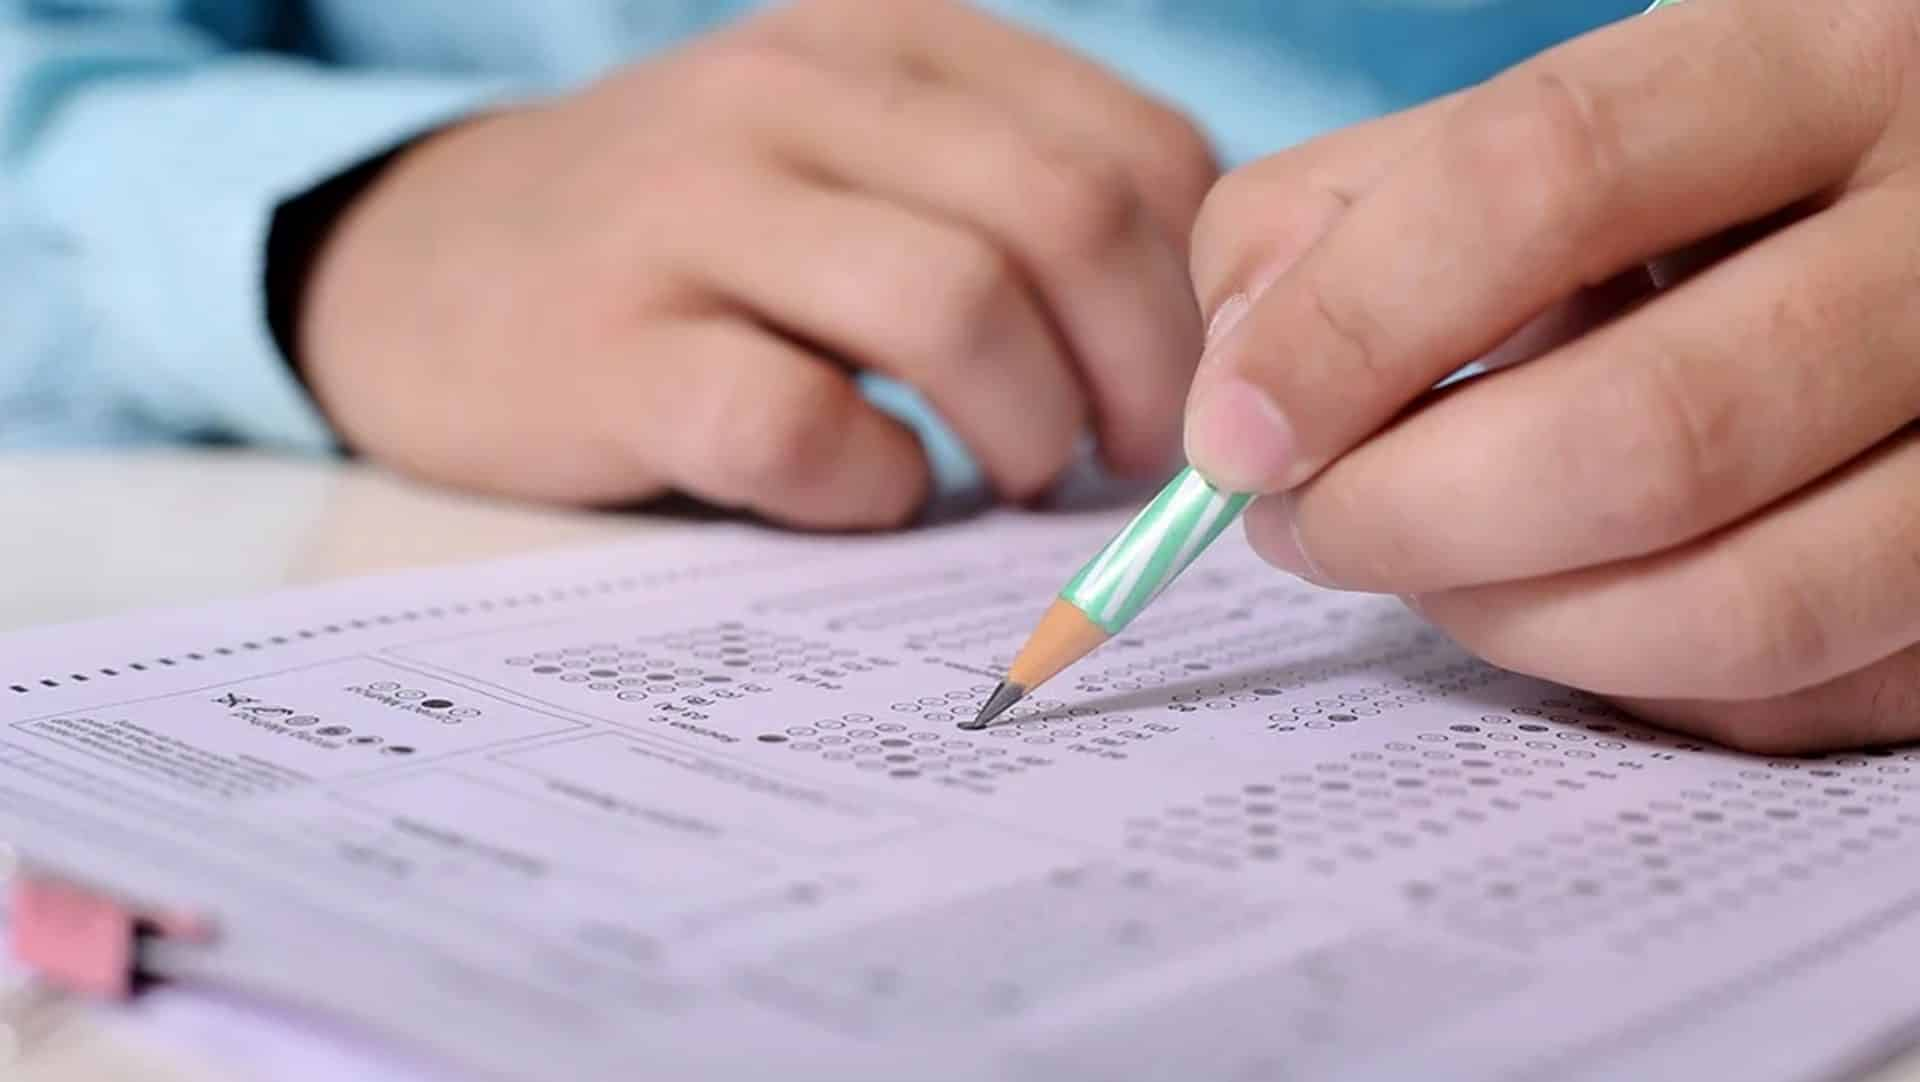 63 pc of educational institutions for hybrid route to conduct exams: Report